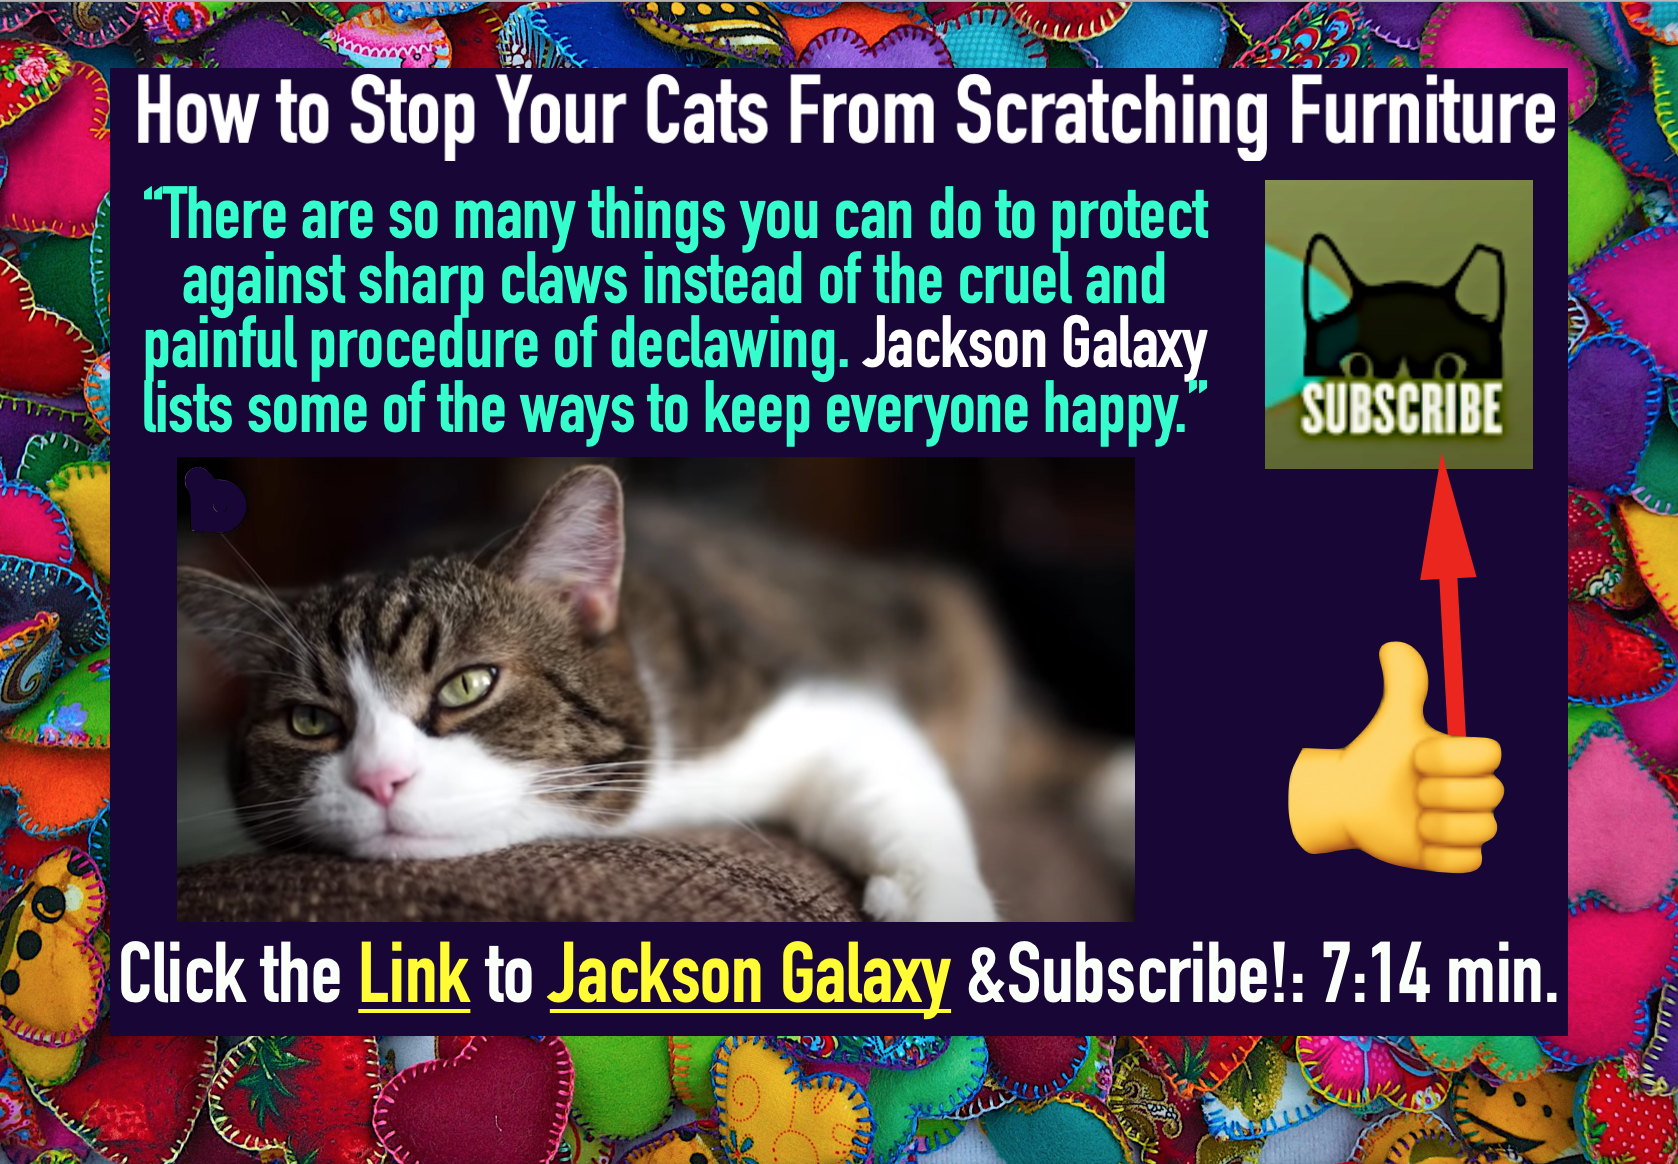 Jackson Galaxy Tips How To Stop Your Cats From Scratching Furniture Click The Link Subscribe 7 14m In 2020 Jackson Galaxy Furniture Scratches Feeling Happy